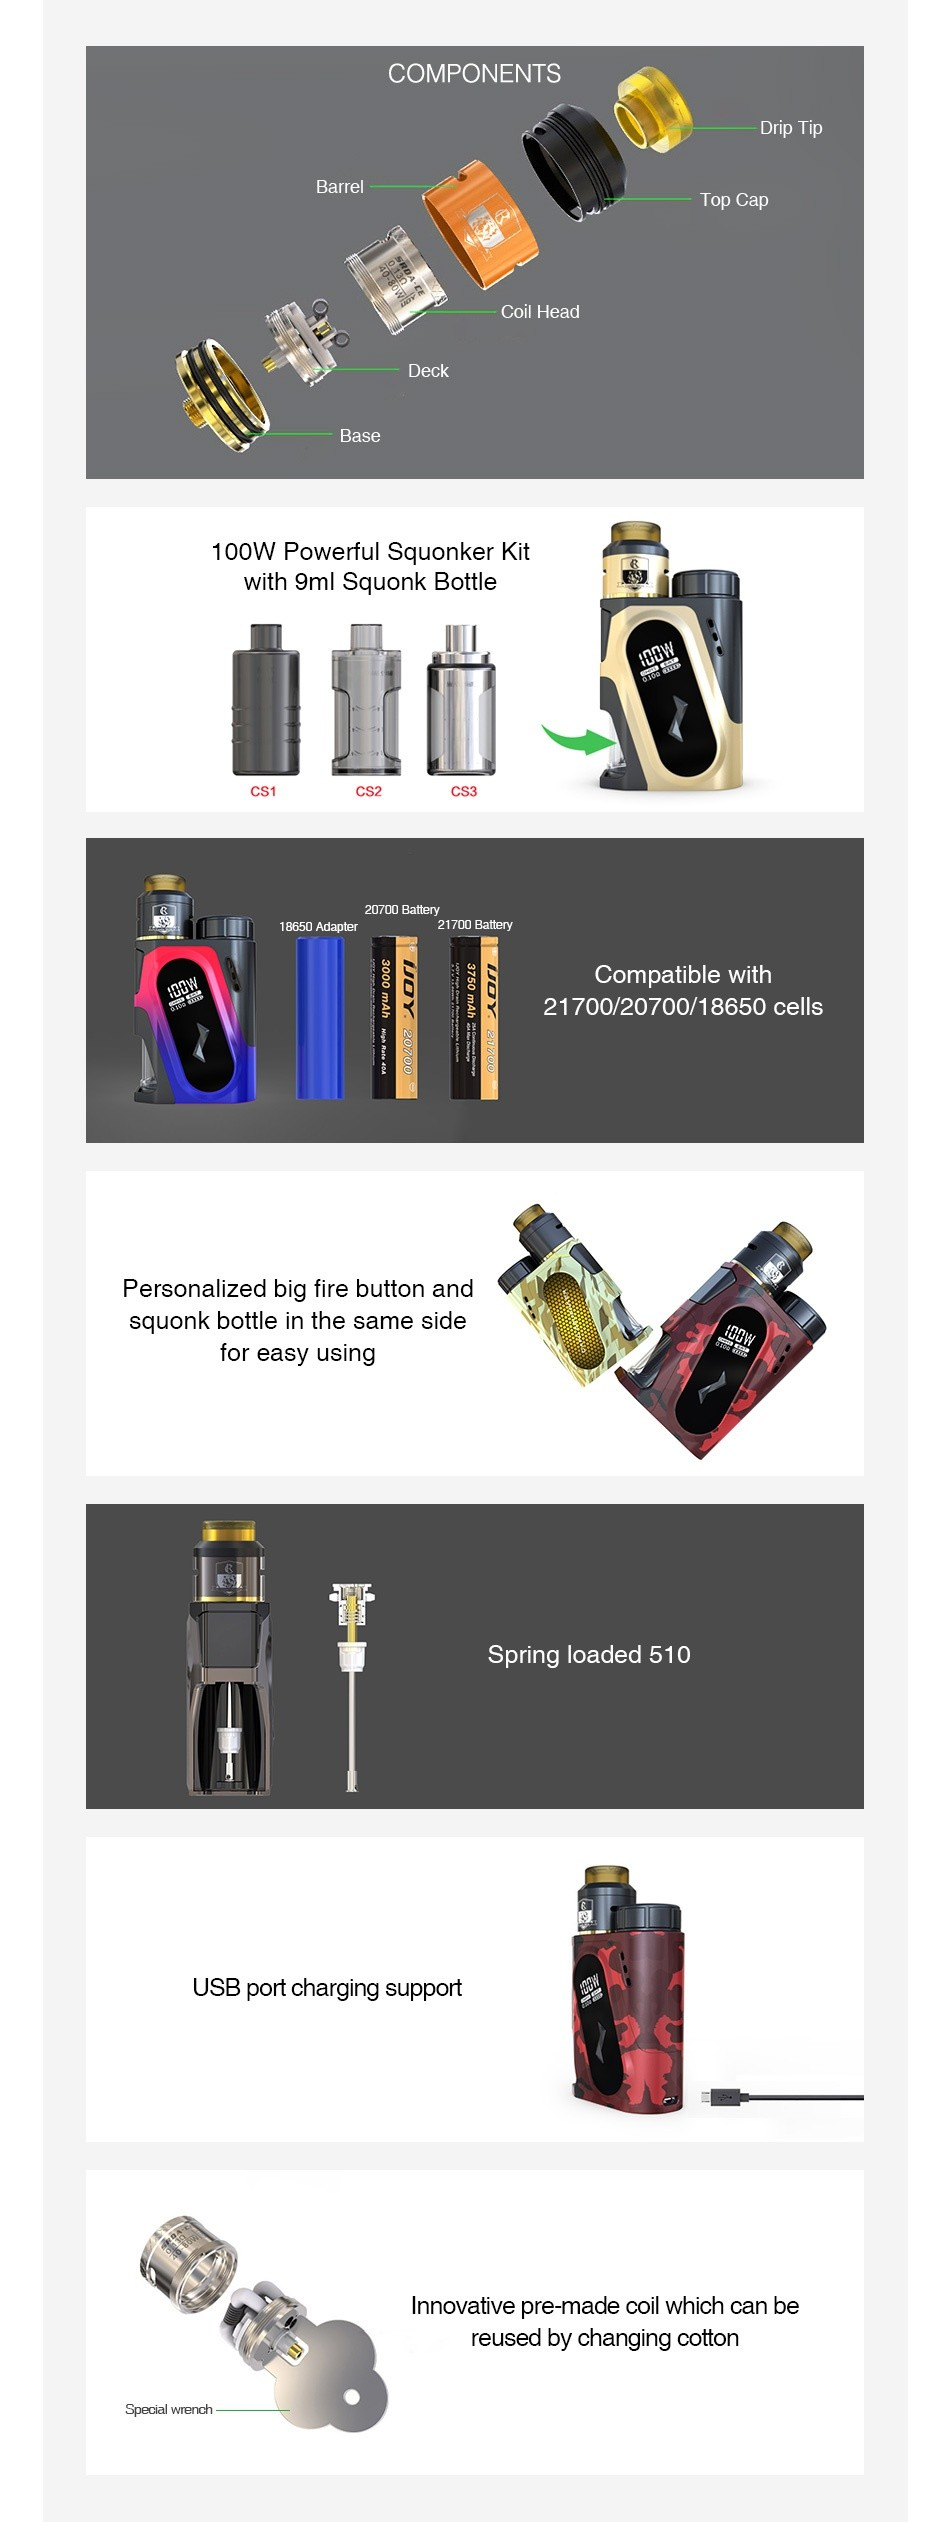 IJOY CAPO SRDA 100W 20700 Squonker Kit 3000mAh COMPONENTS op Cap Coil head 100W Powerful Squonker kit with gml Squonk Bottle Compatible with 21700 20700 18650cel Personalized big fire button and squonk bottle in the same side Spring loaded 510 USB port charging support Innovative pre made coil which can be eused by changing cotton Spooial ronon